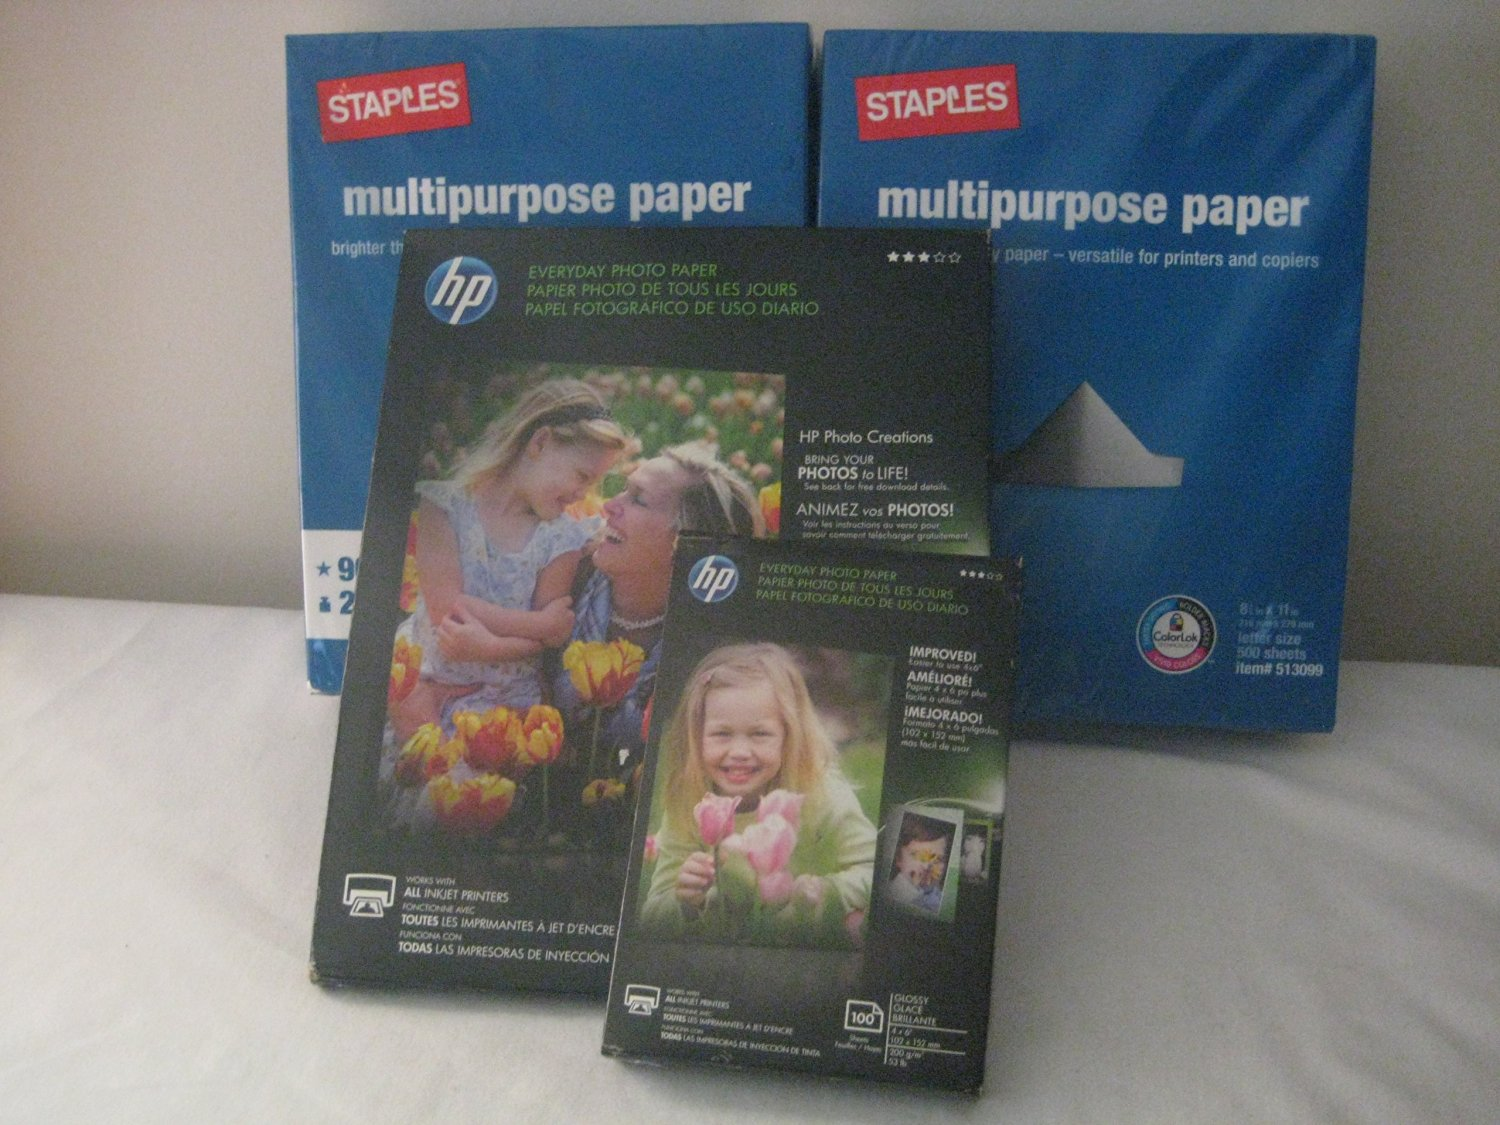 Staples Multipurpose Paper Brighter than copy Paper- Versatile for Printers and Copiers; 96 Bright, Size: 8.5 x 11in / 20 lbs (2Pack), HEWLETT PACKARD HP EVERYDAY PHOTO PAPER, GLOSSY, 4X6, 100 SHEETS (Qty 1) & HP Everyday Photo Paper, Glossy, 8.5 x 11 Inches, 50 Sheets per Pack (QTY 1)